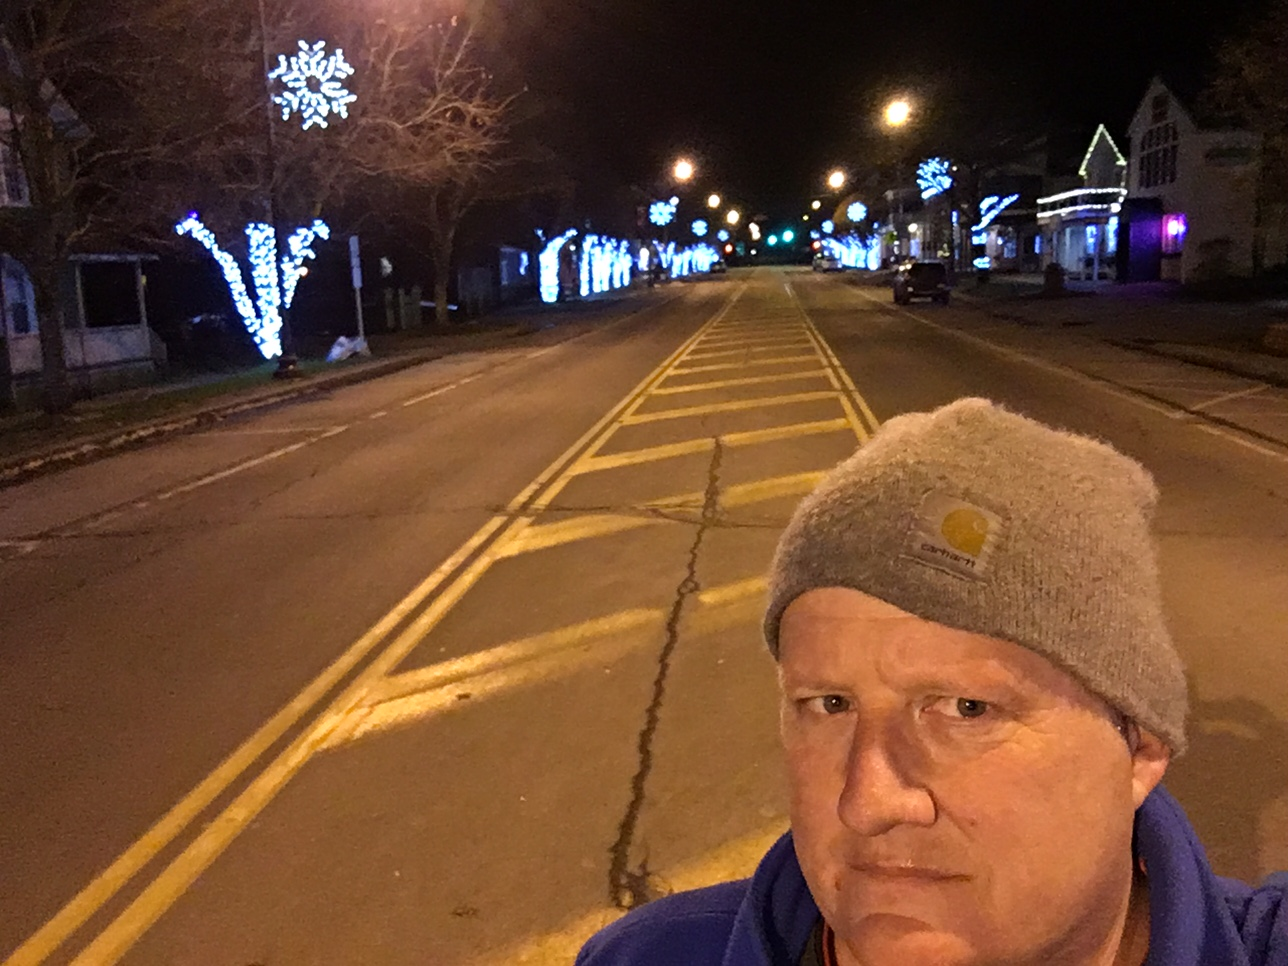 In Ellicottville: let there be light!